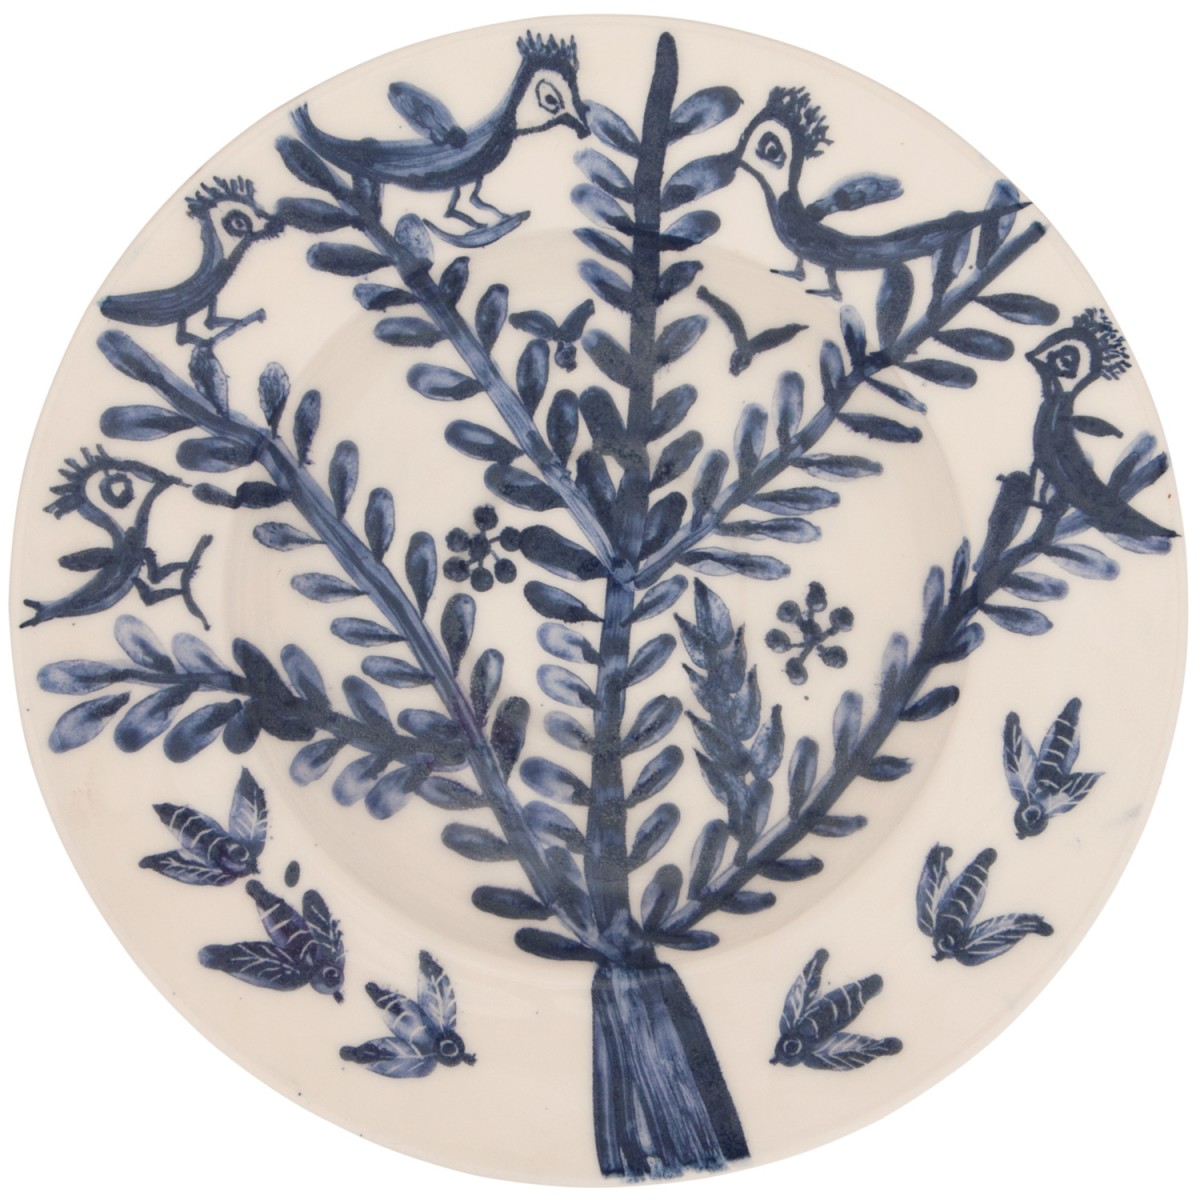 Large Decorative Bowls for tables | Tree-Birds-Bees-1